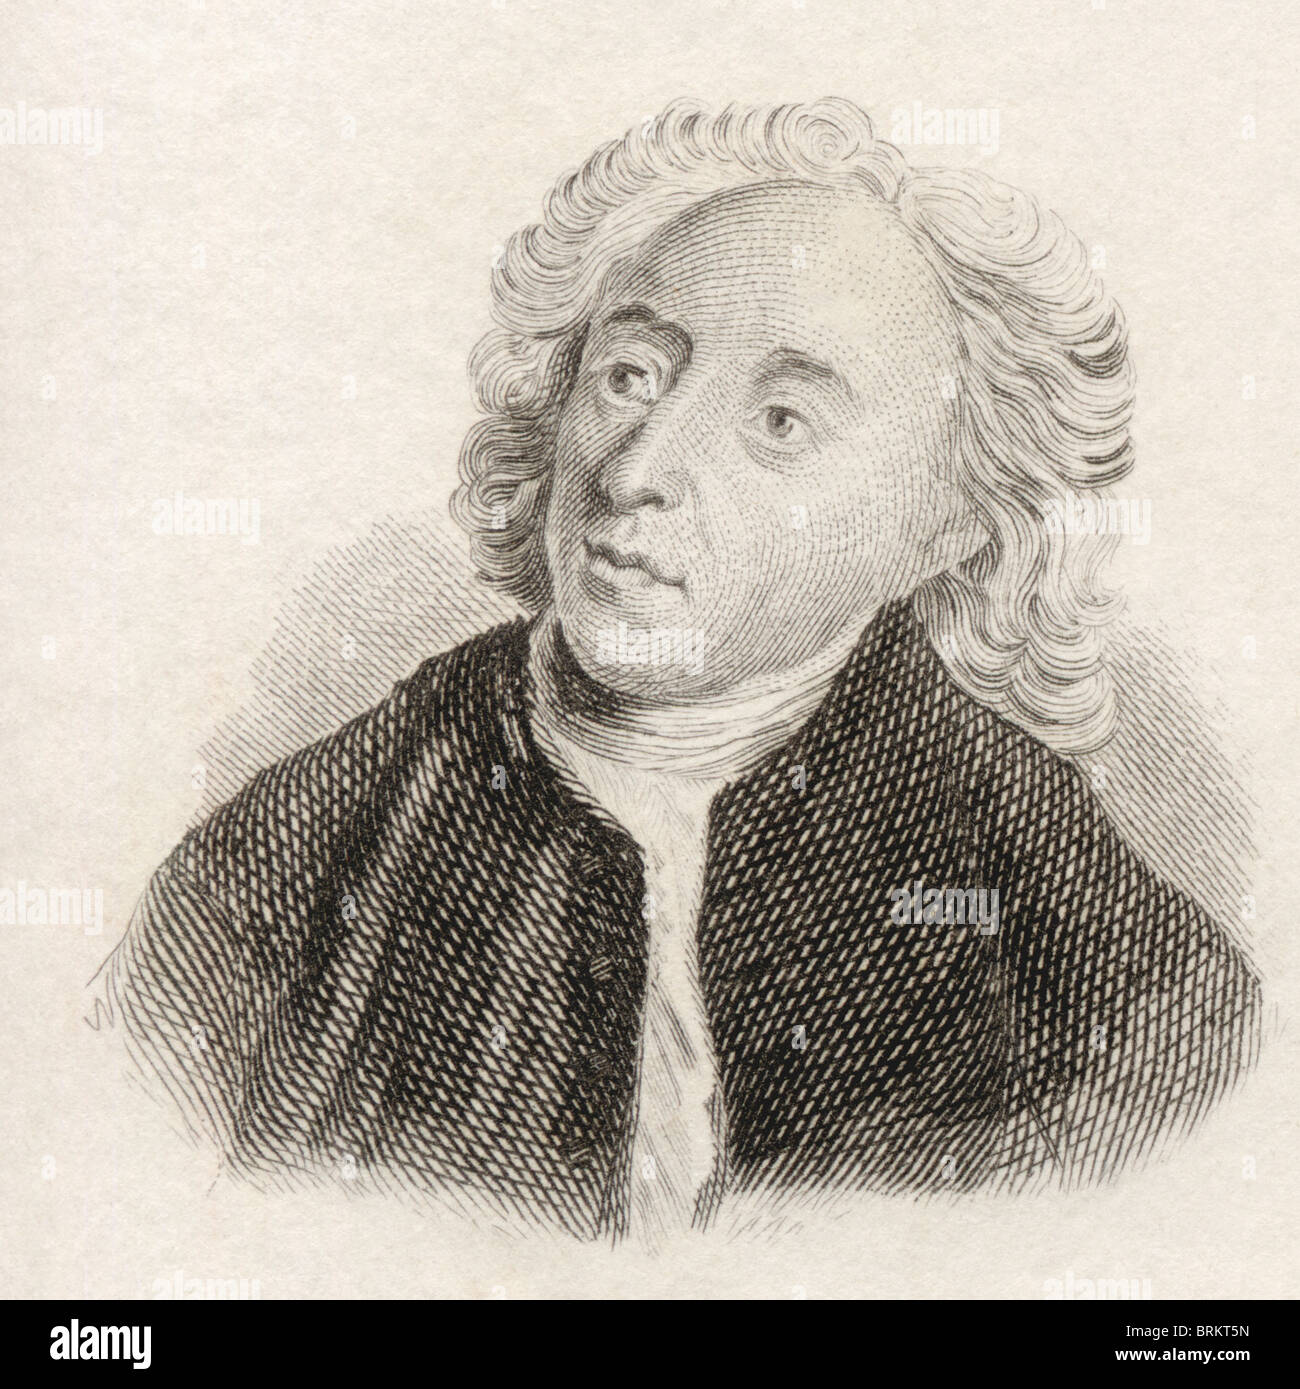 Alexander Pope, 1688 to 1744. English satirical poet. - Stock Image